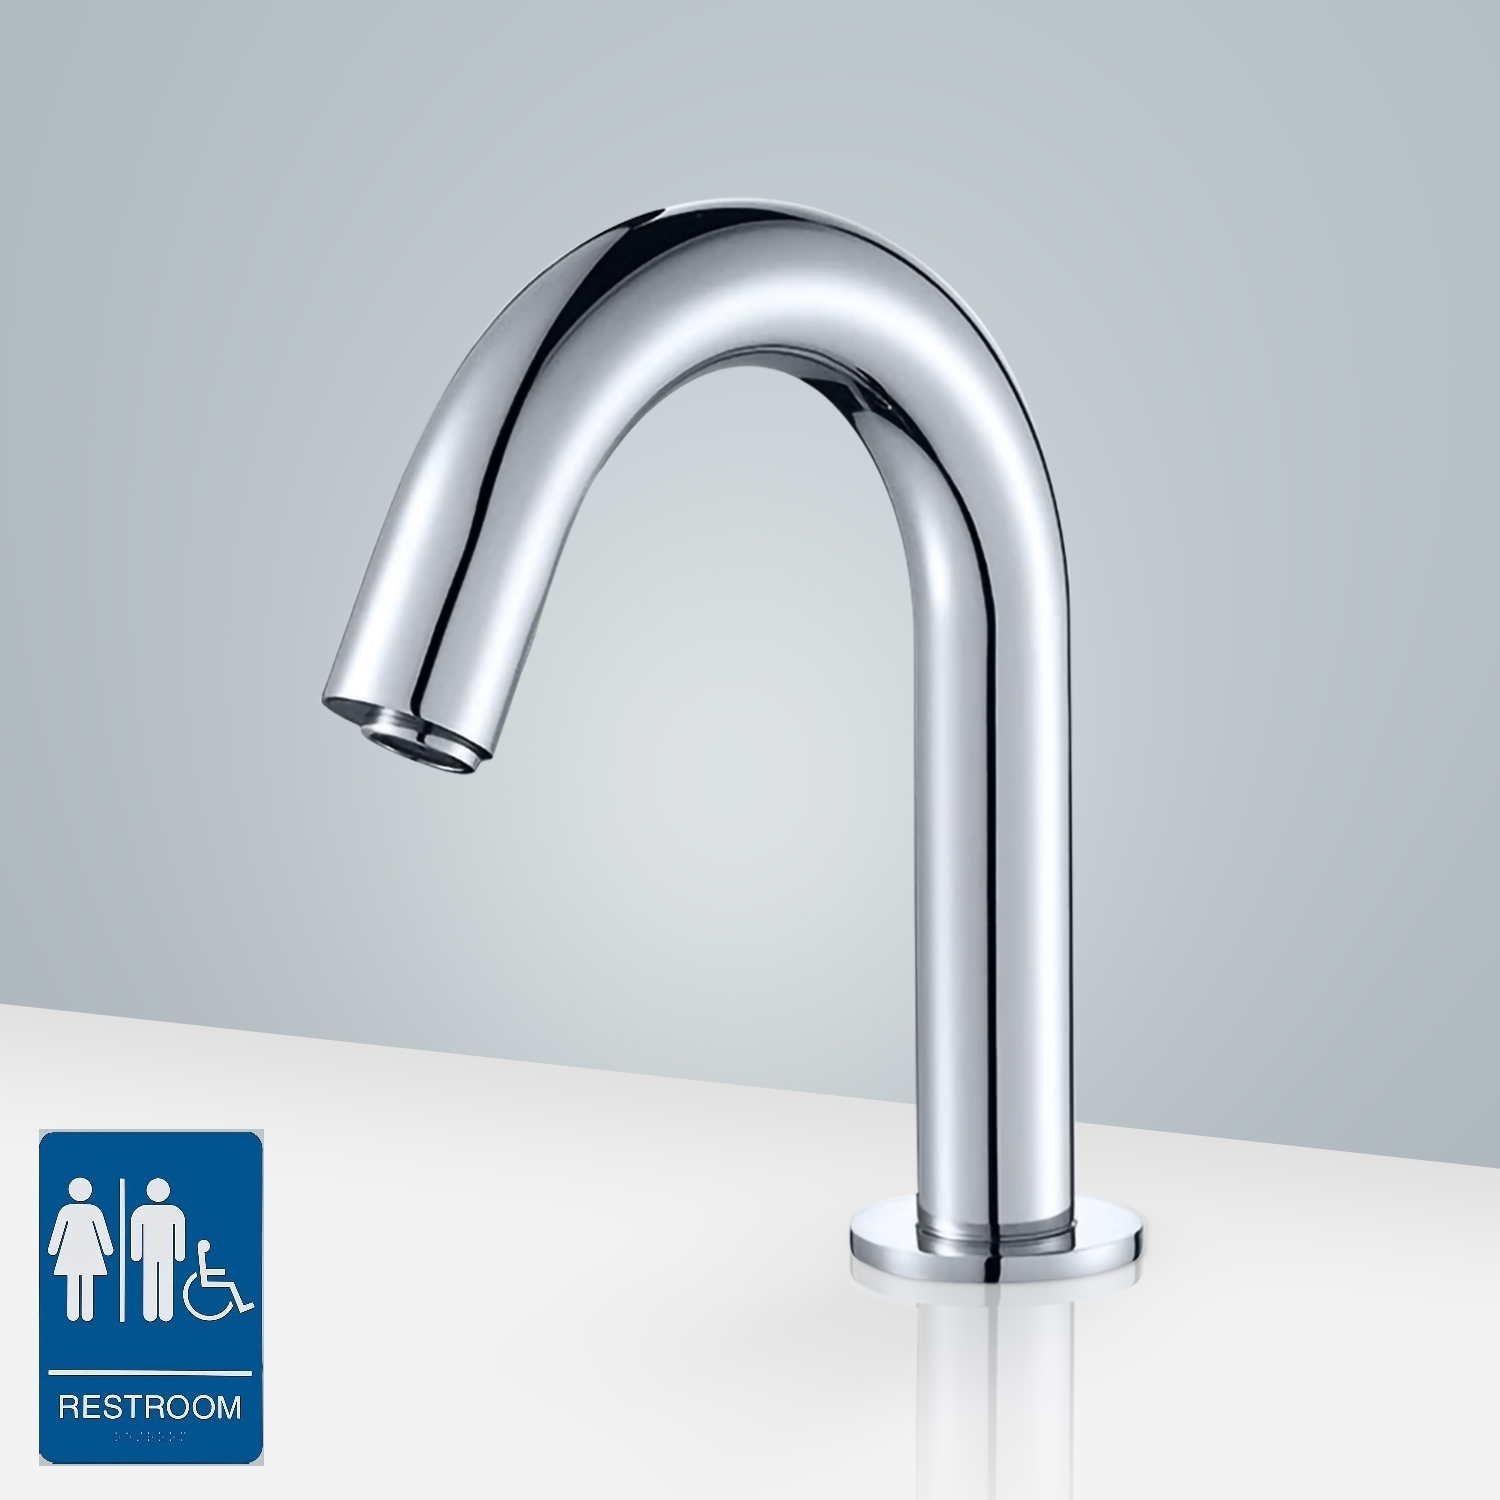 free faucet dhgate bathroom glenae touch waterfall sensor from hands tap sense automatic infrared com product wholesale water chrome